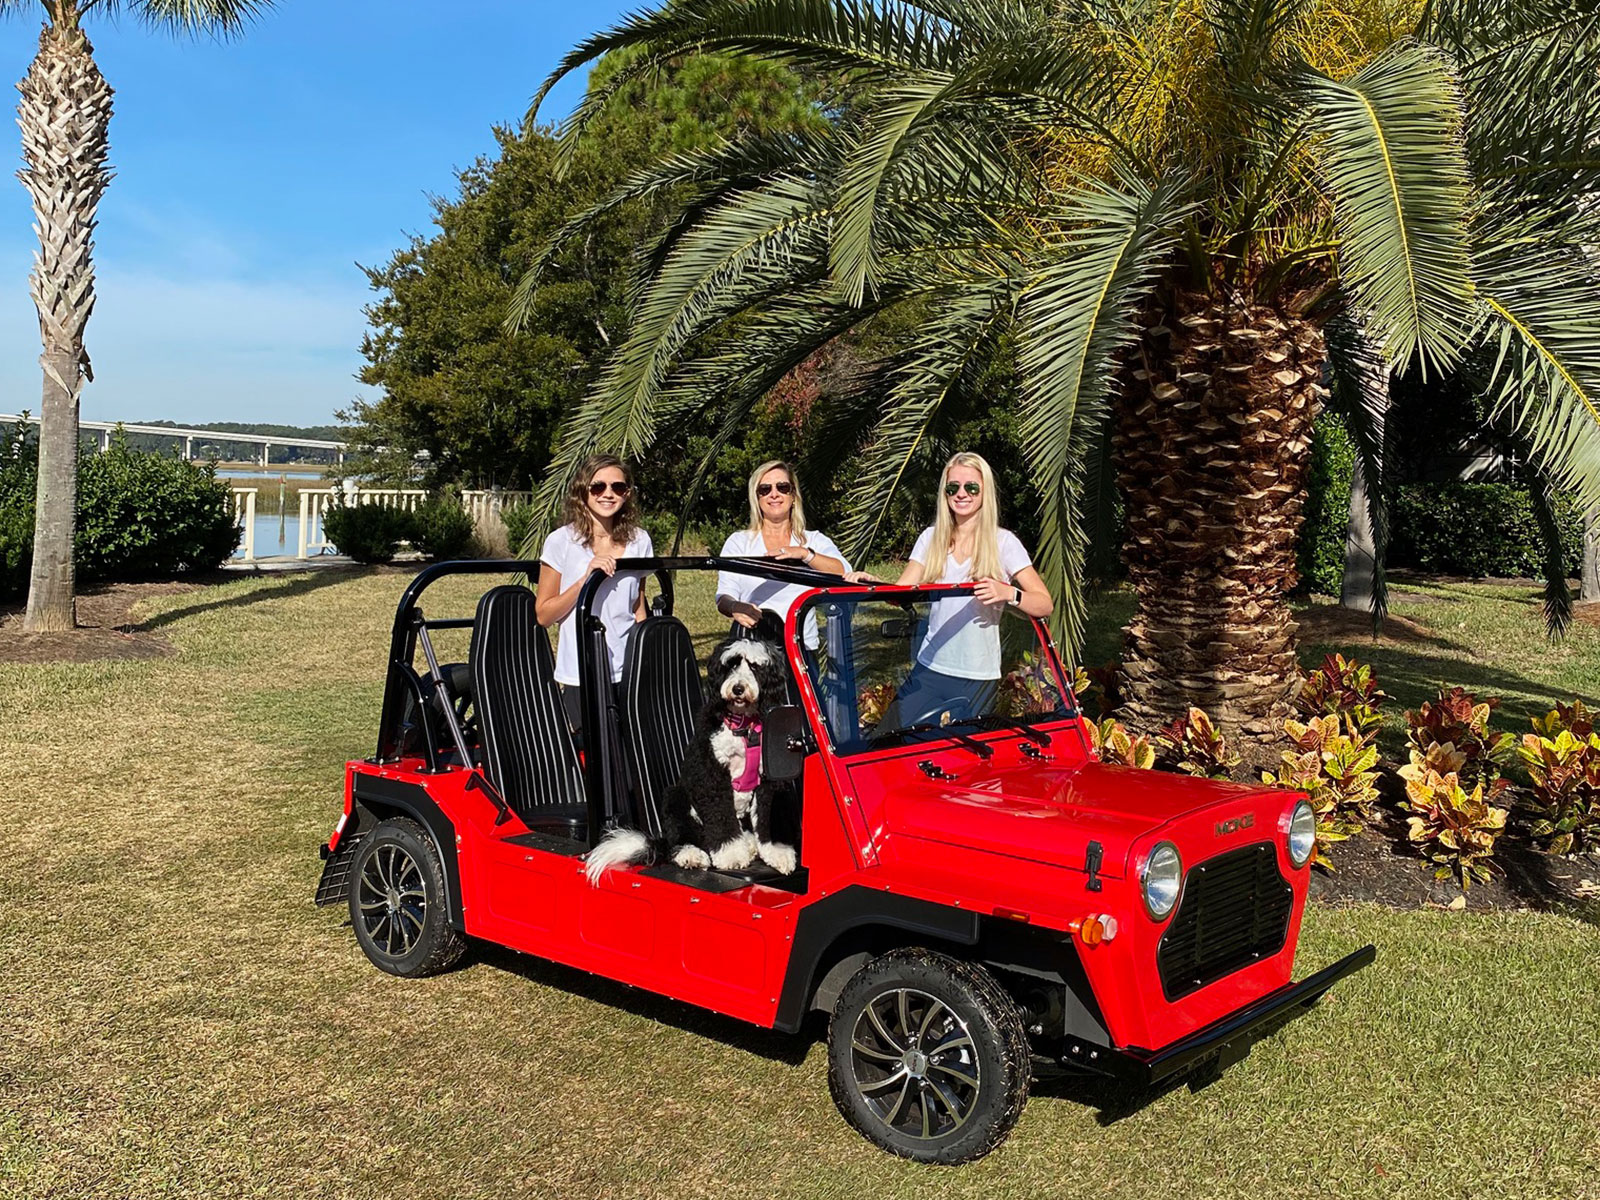 three women and a dog in a red Moke